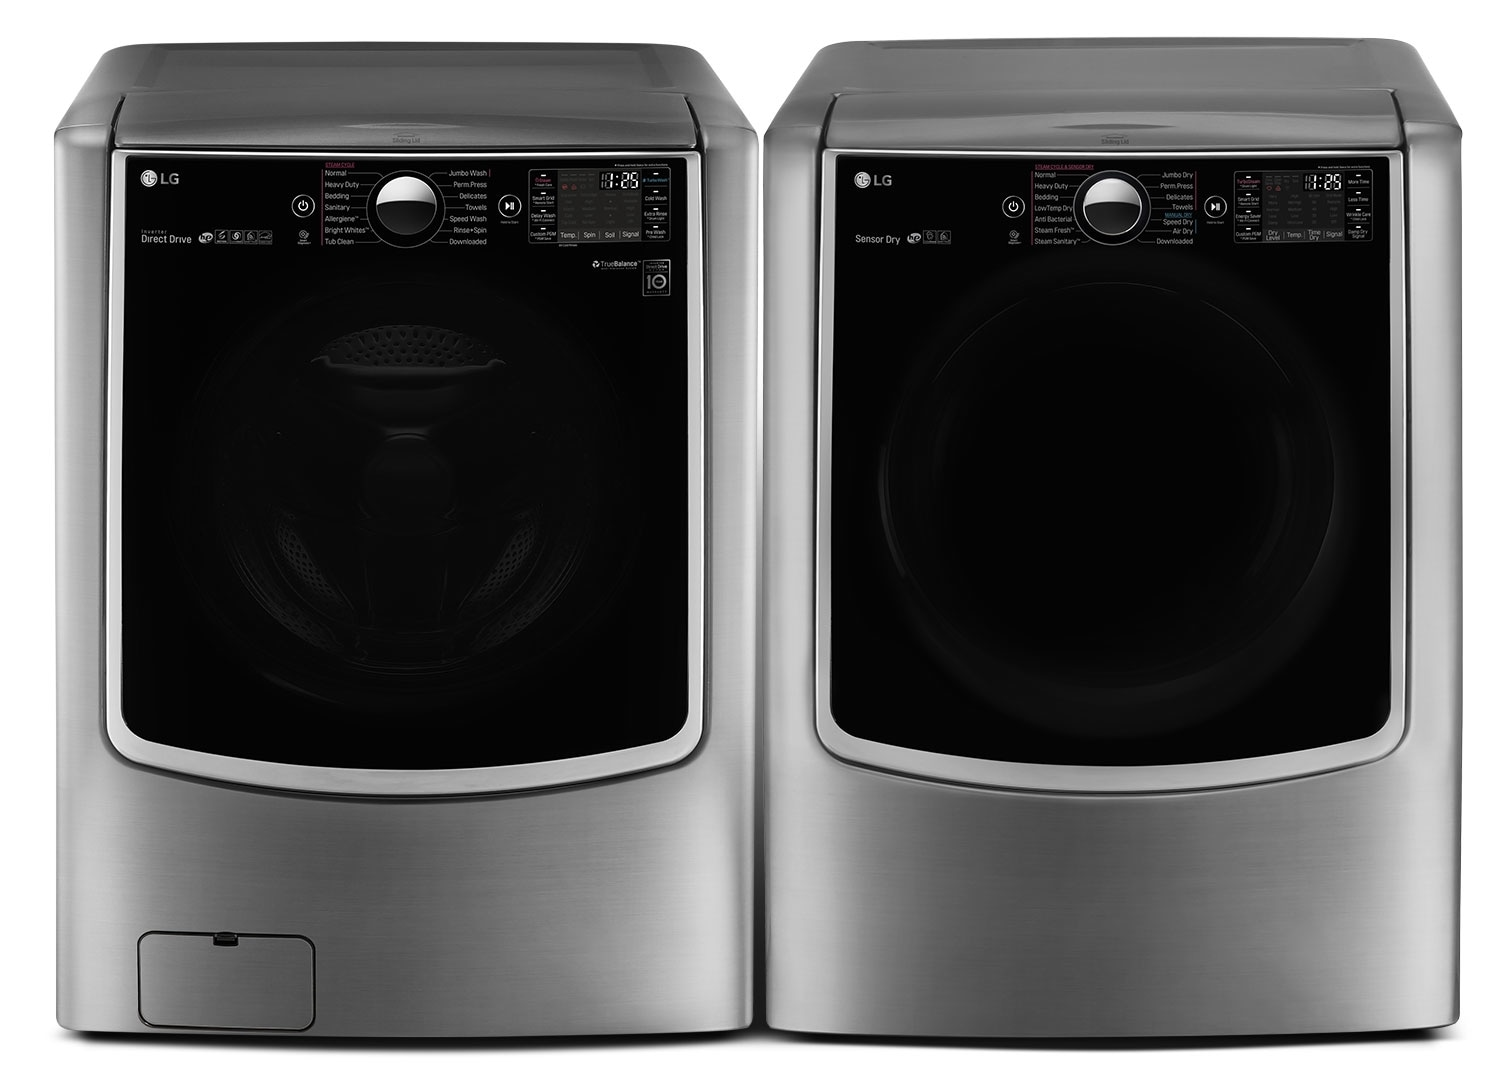 Washers and Dryers - LG 6.0 Cu. Ft. Front-Load Steam Washer and 9.0 Cu. Ft. Gas Dryer – Graphite Steel